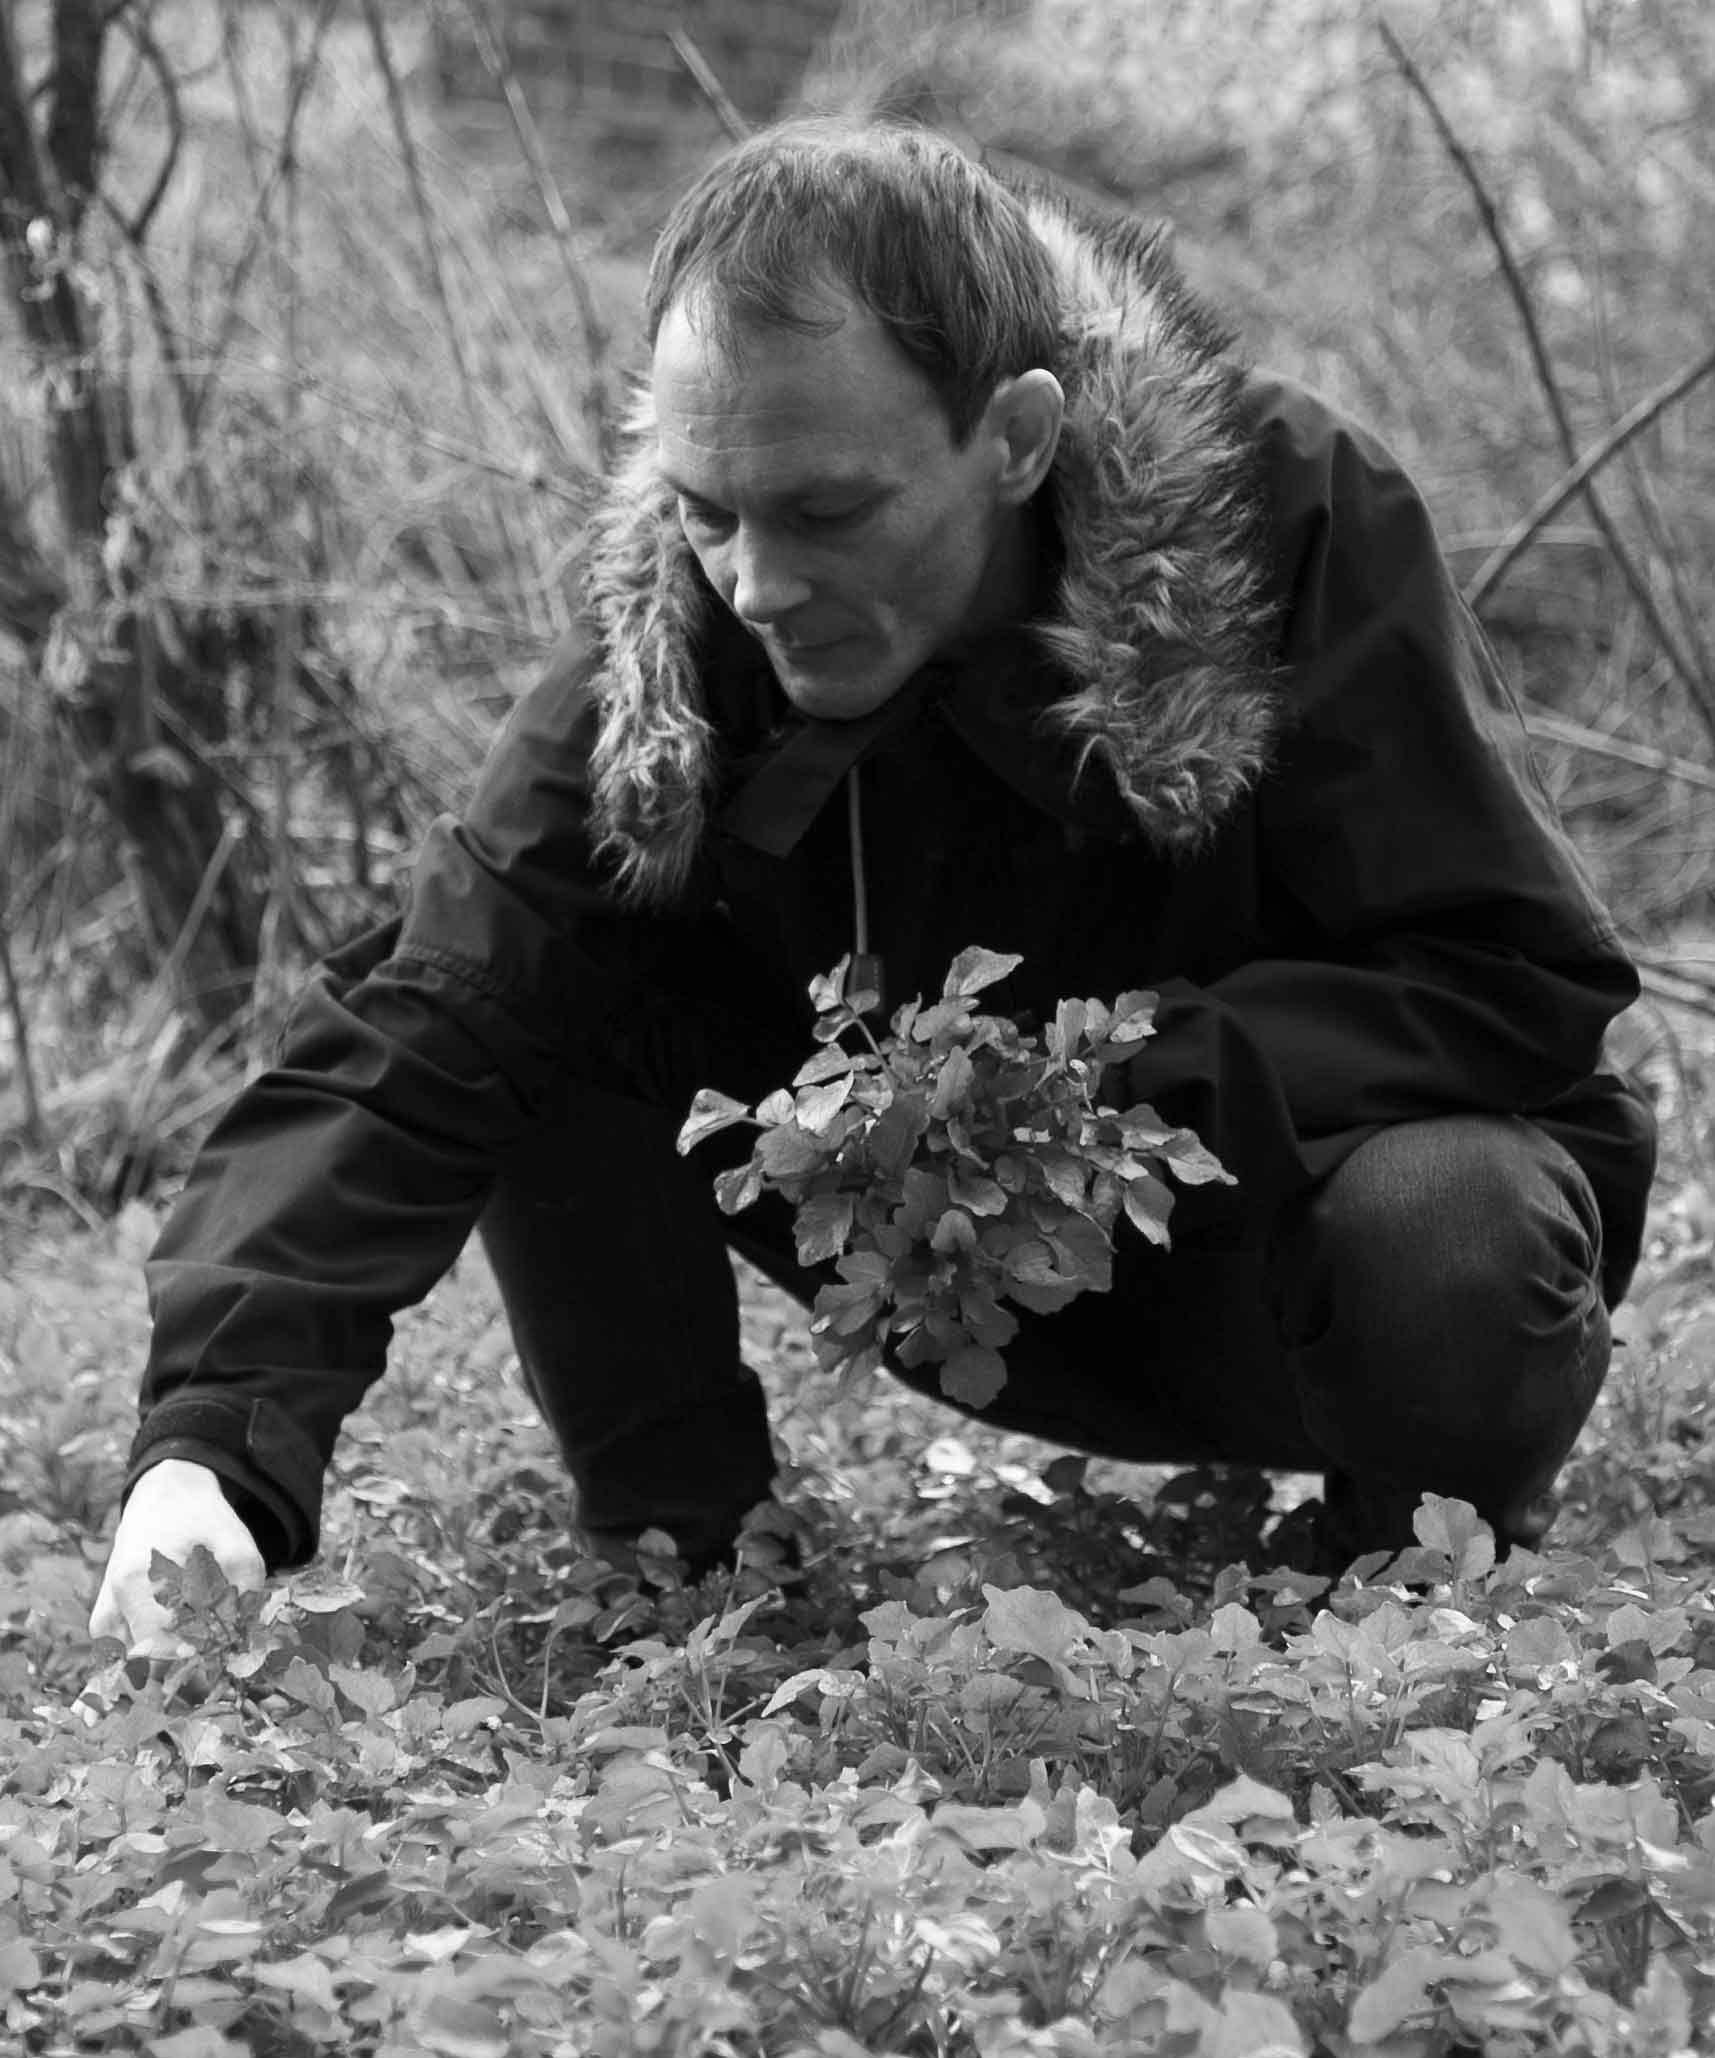 Jamie - Somerset  Jamie's spent years mapping out the green county's woodlands and coastlines. No request is too obscure for this woodland dweller, constantly on the hunt for new and exciting wild edibles. Be it obscure fungi and thimbles full of flowers, he'll find it for us.